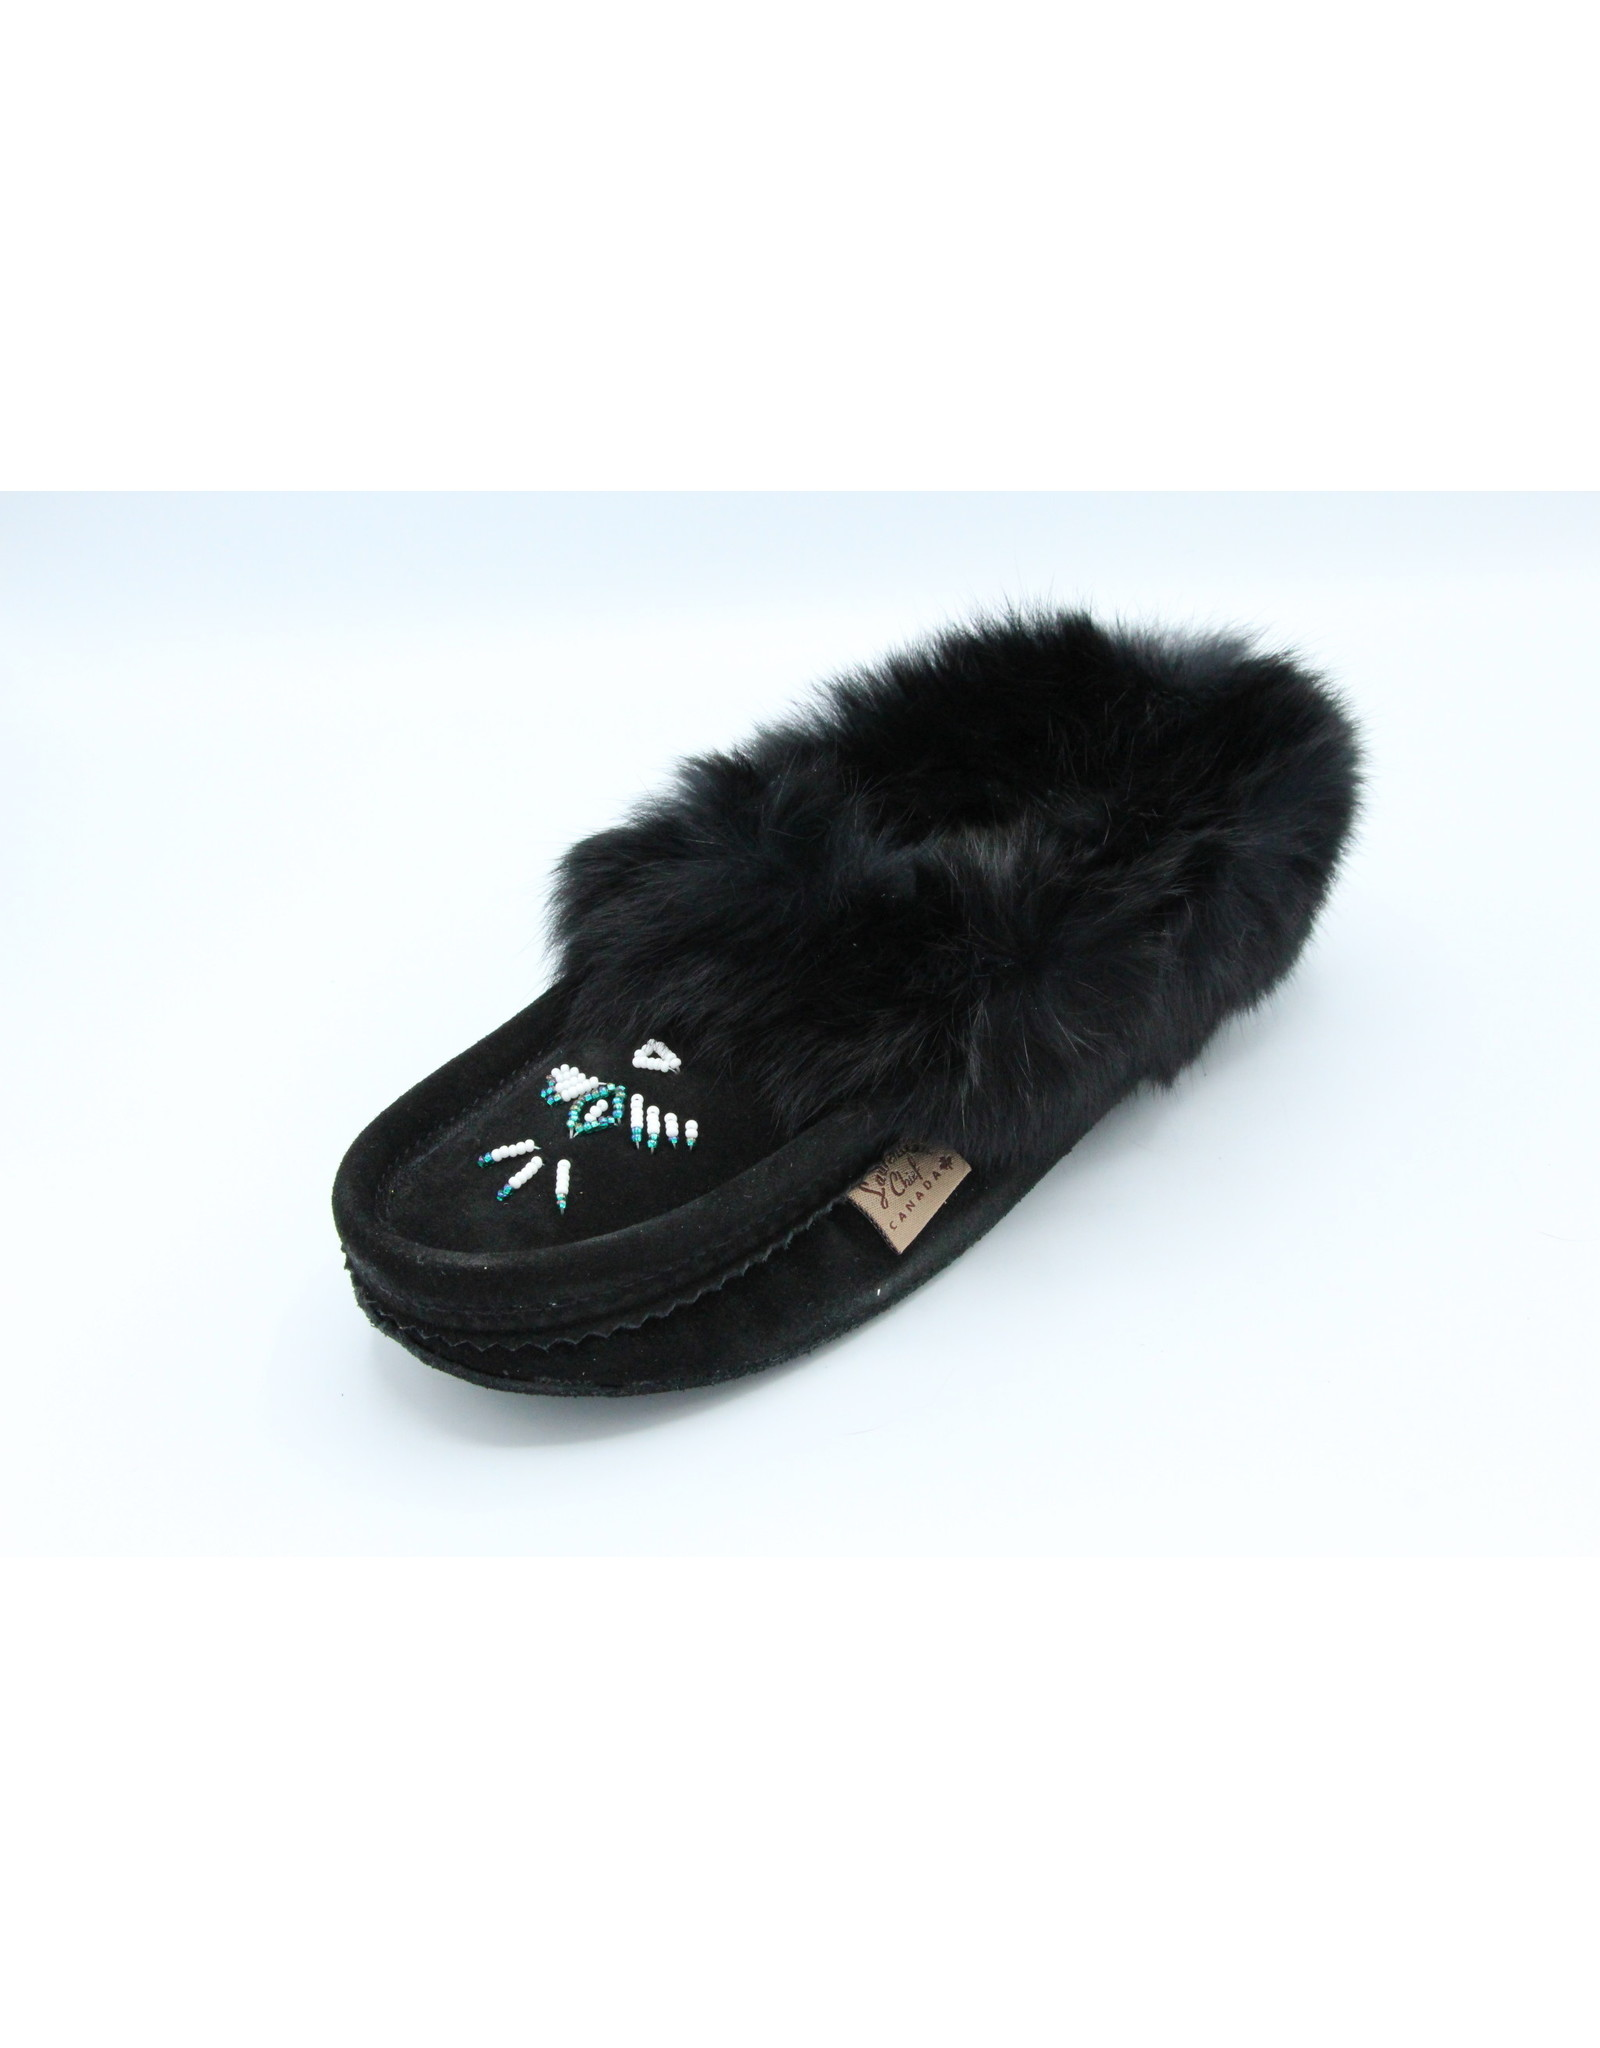 Black Suede Fur Slipper Moccasin - 653L